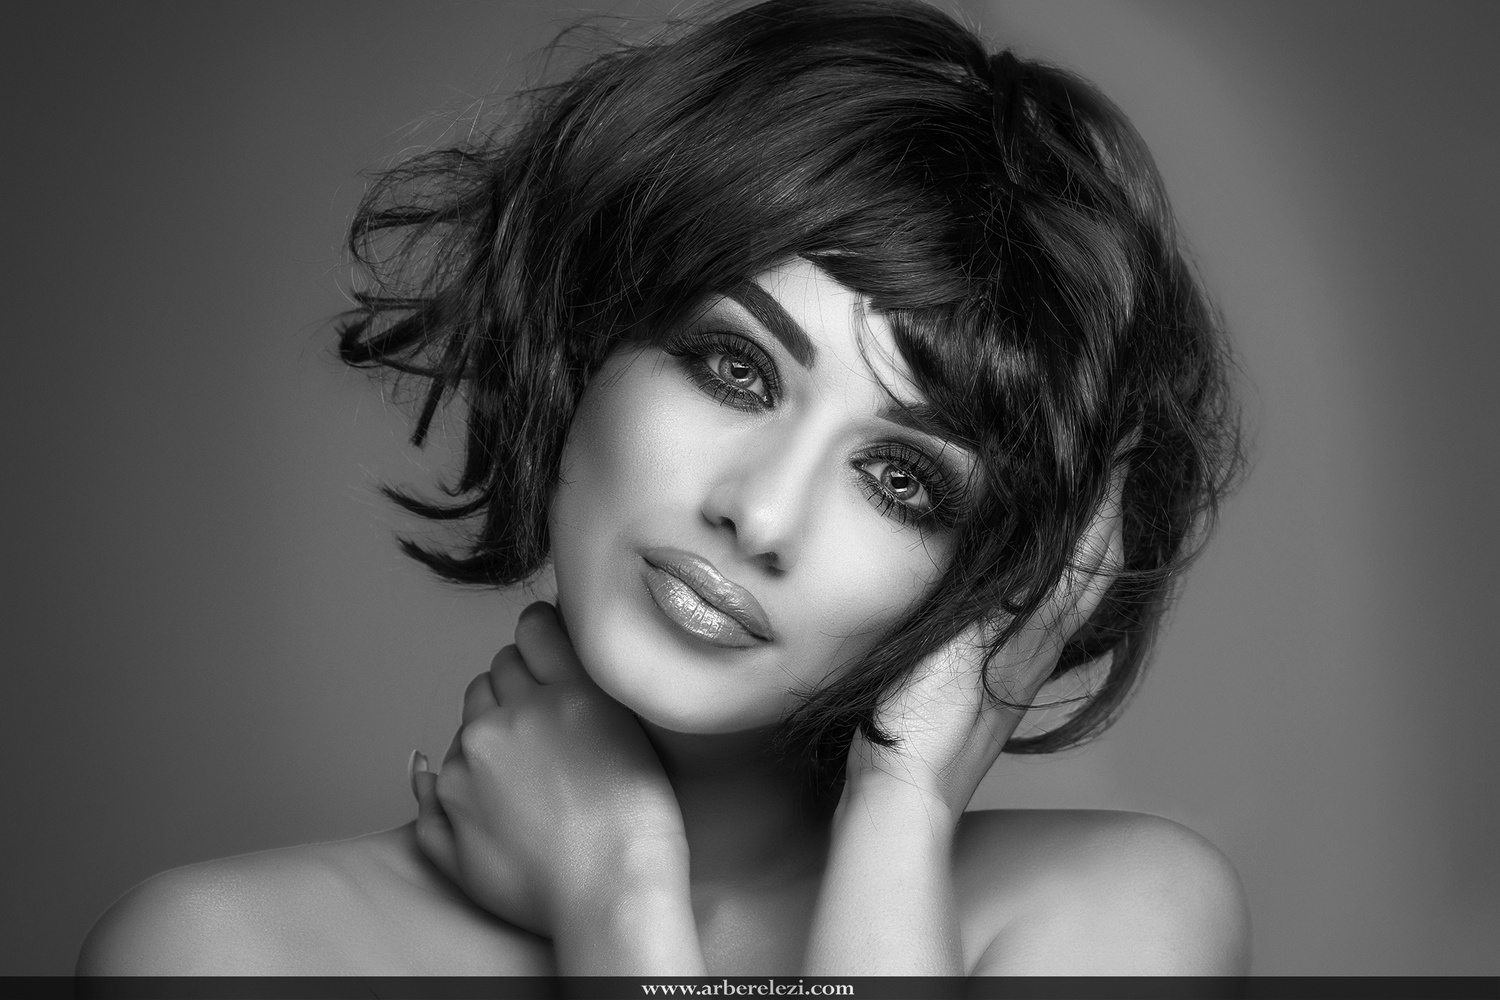 Beauty Shot in B&W version by Arber Elezi